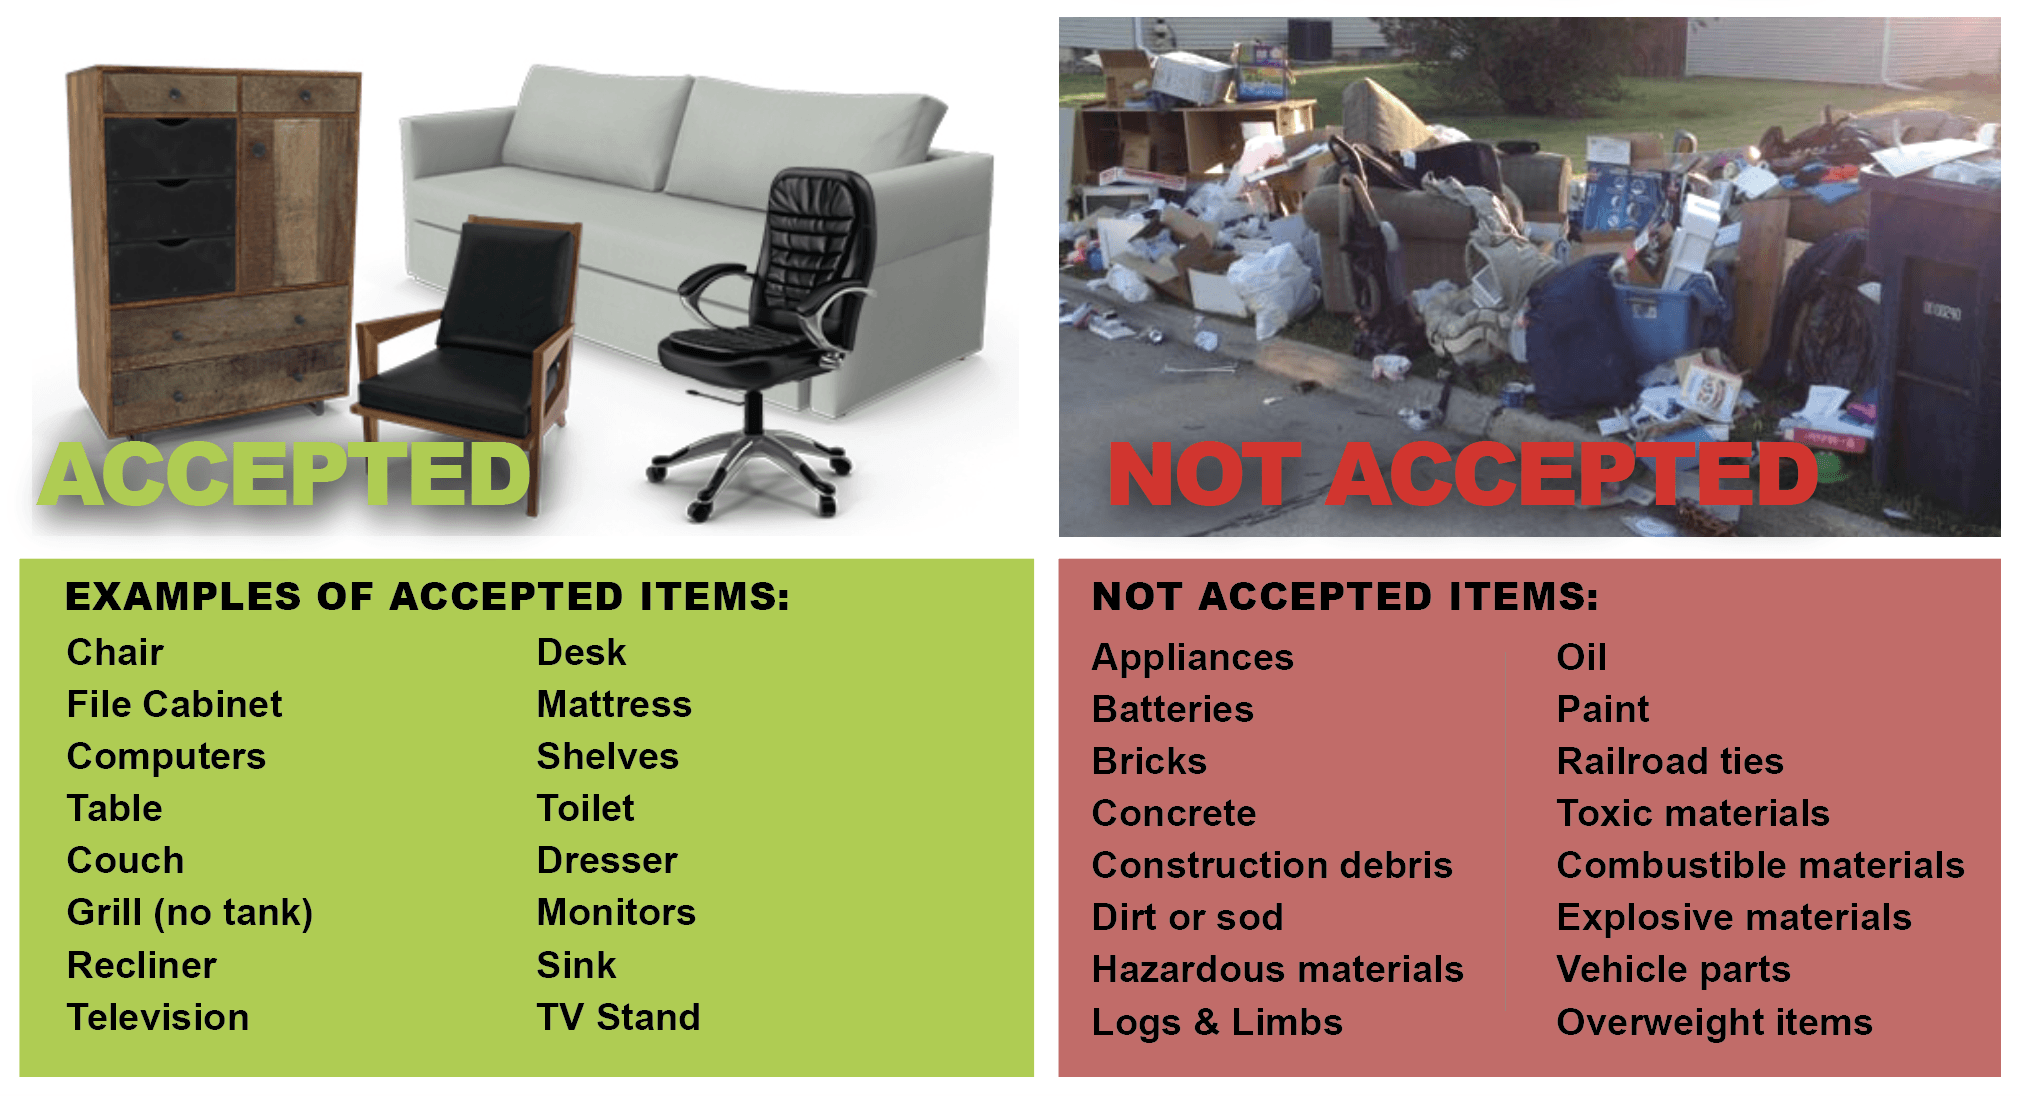 Accepted and Not Accepted Items